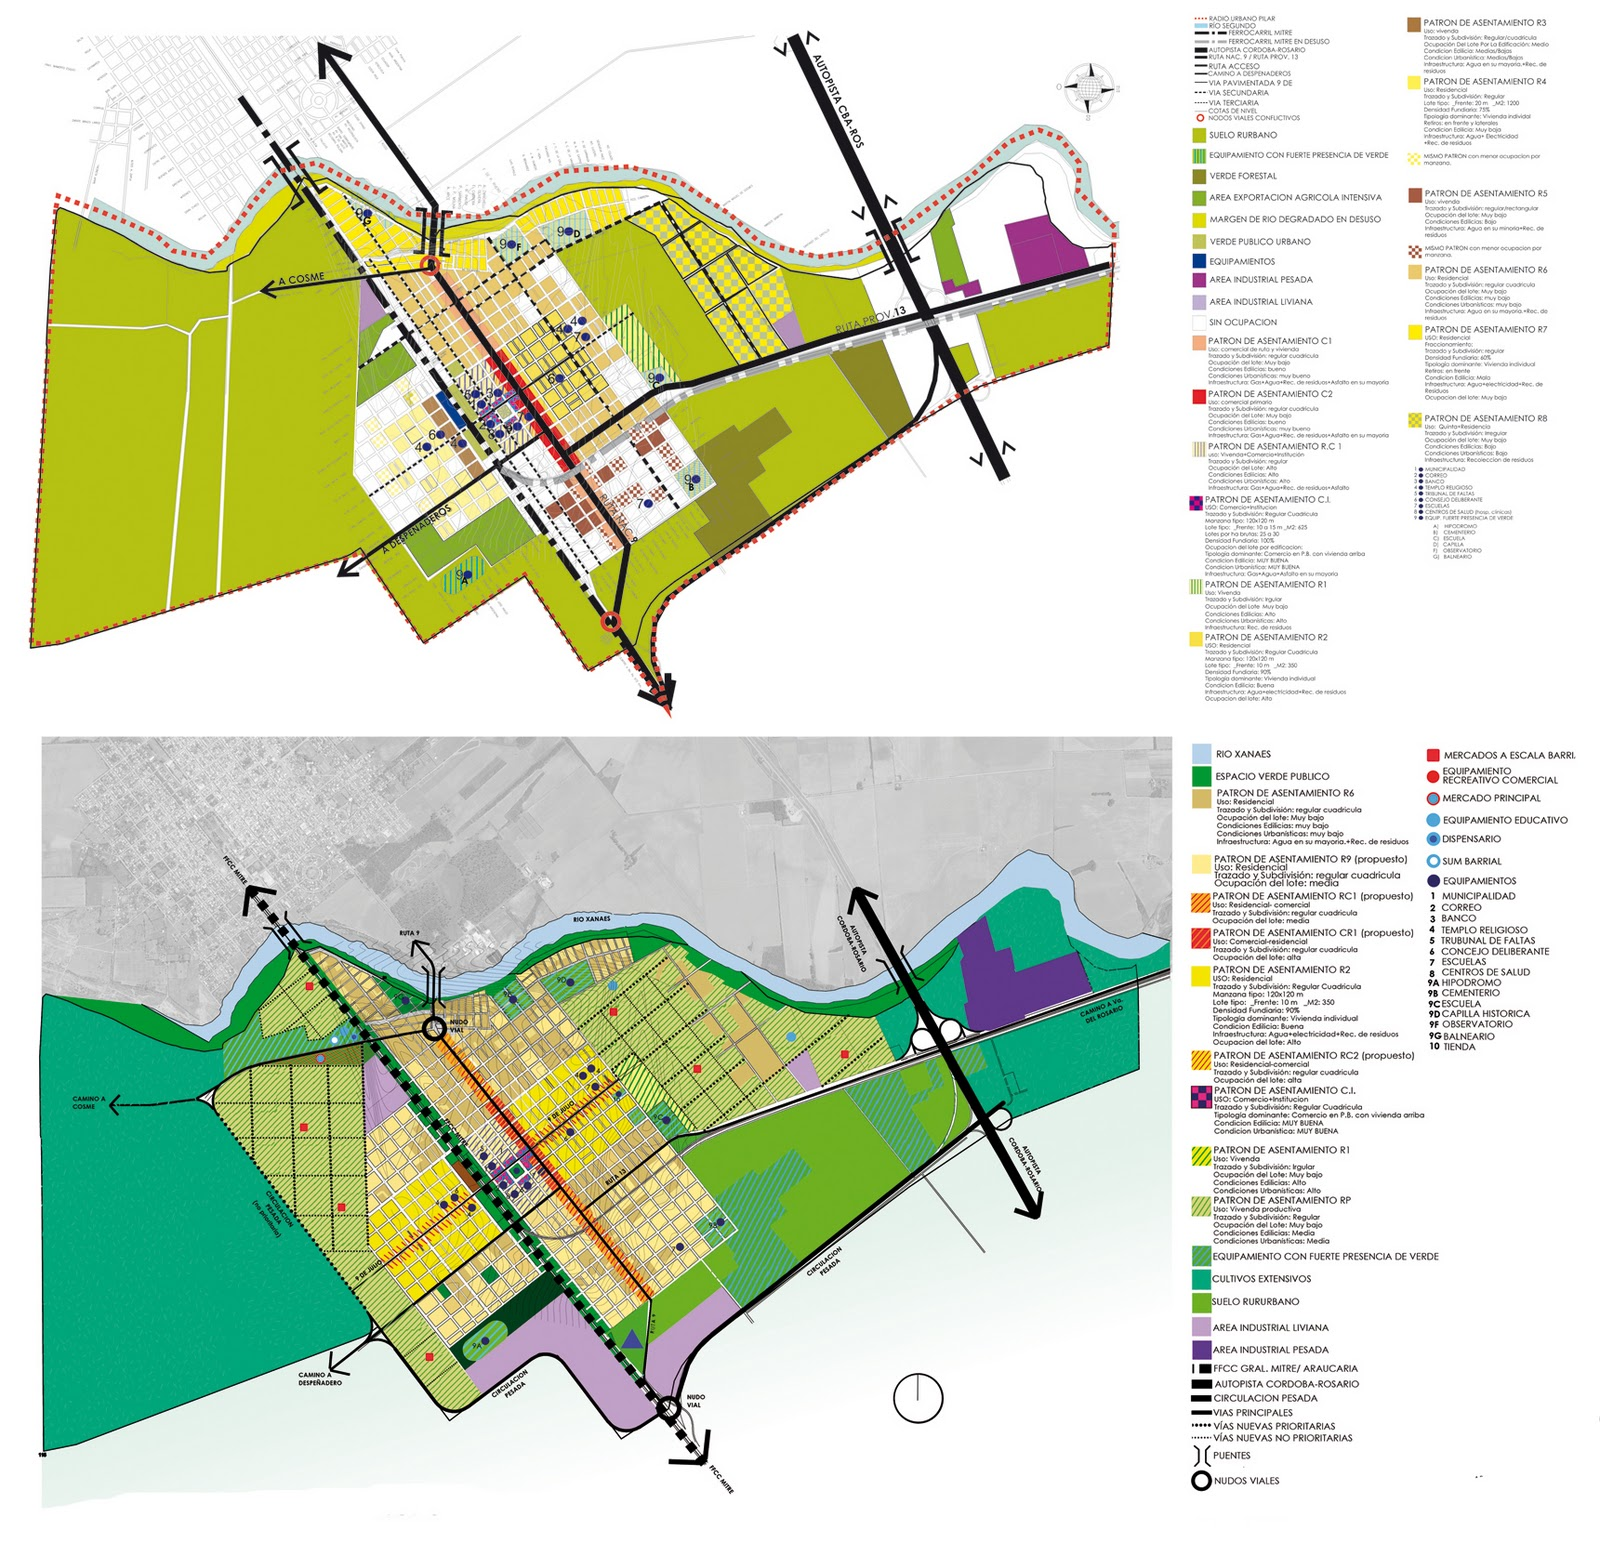 images urban planner in diagram pioneer avh p3200dvd wiring 2 1000 43 about design on pinterest